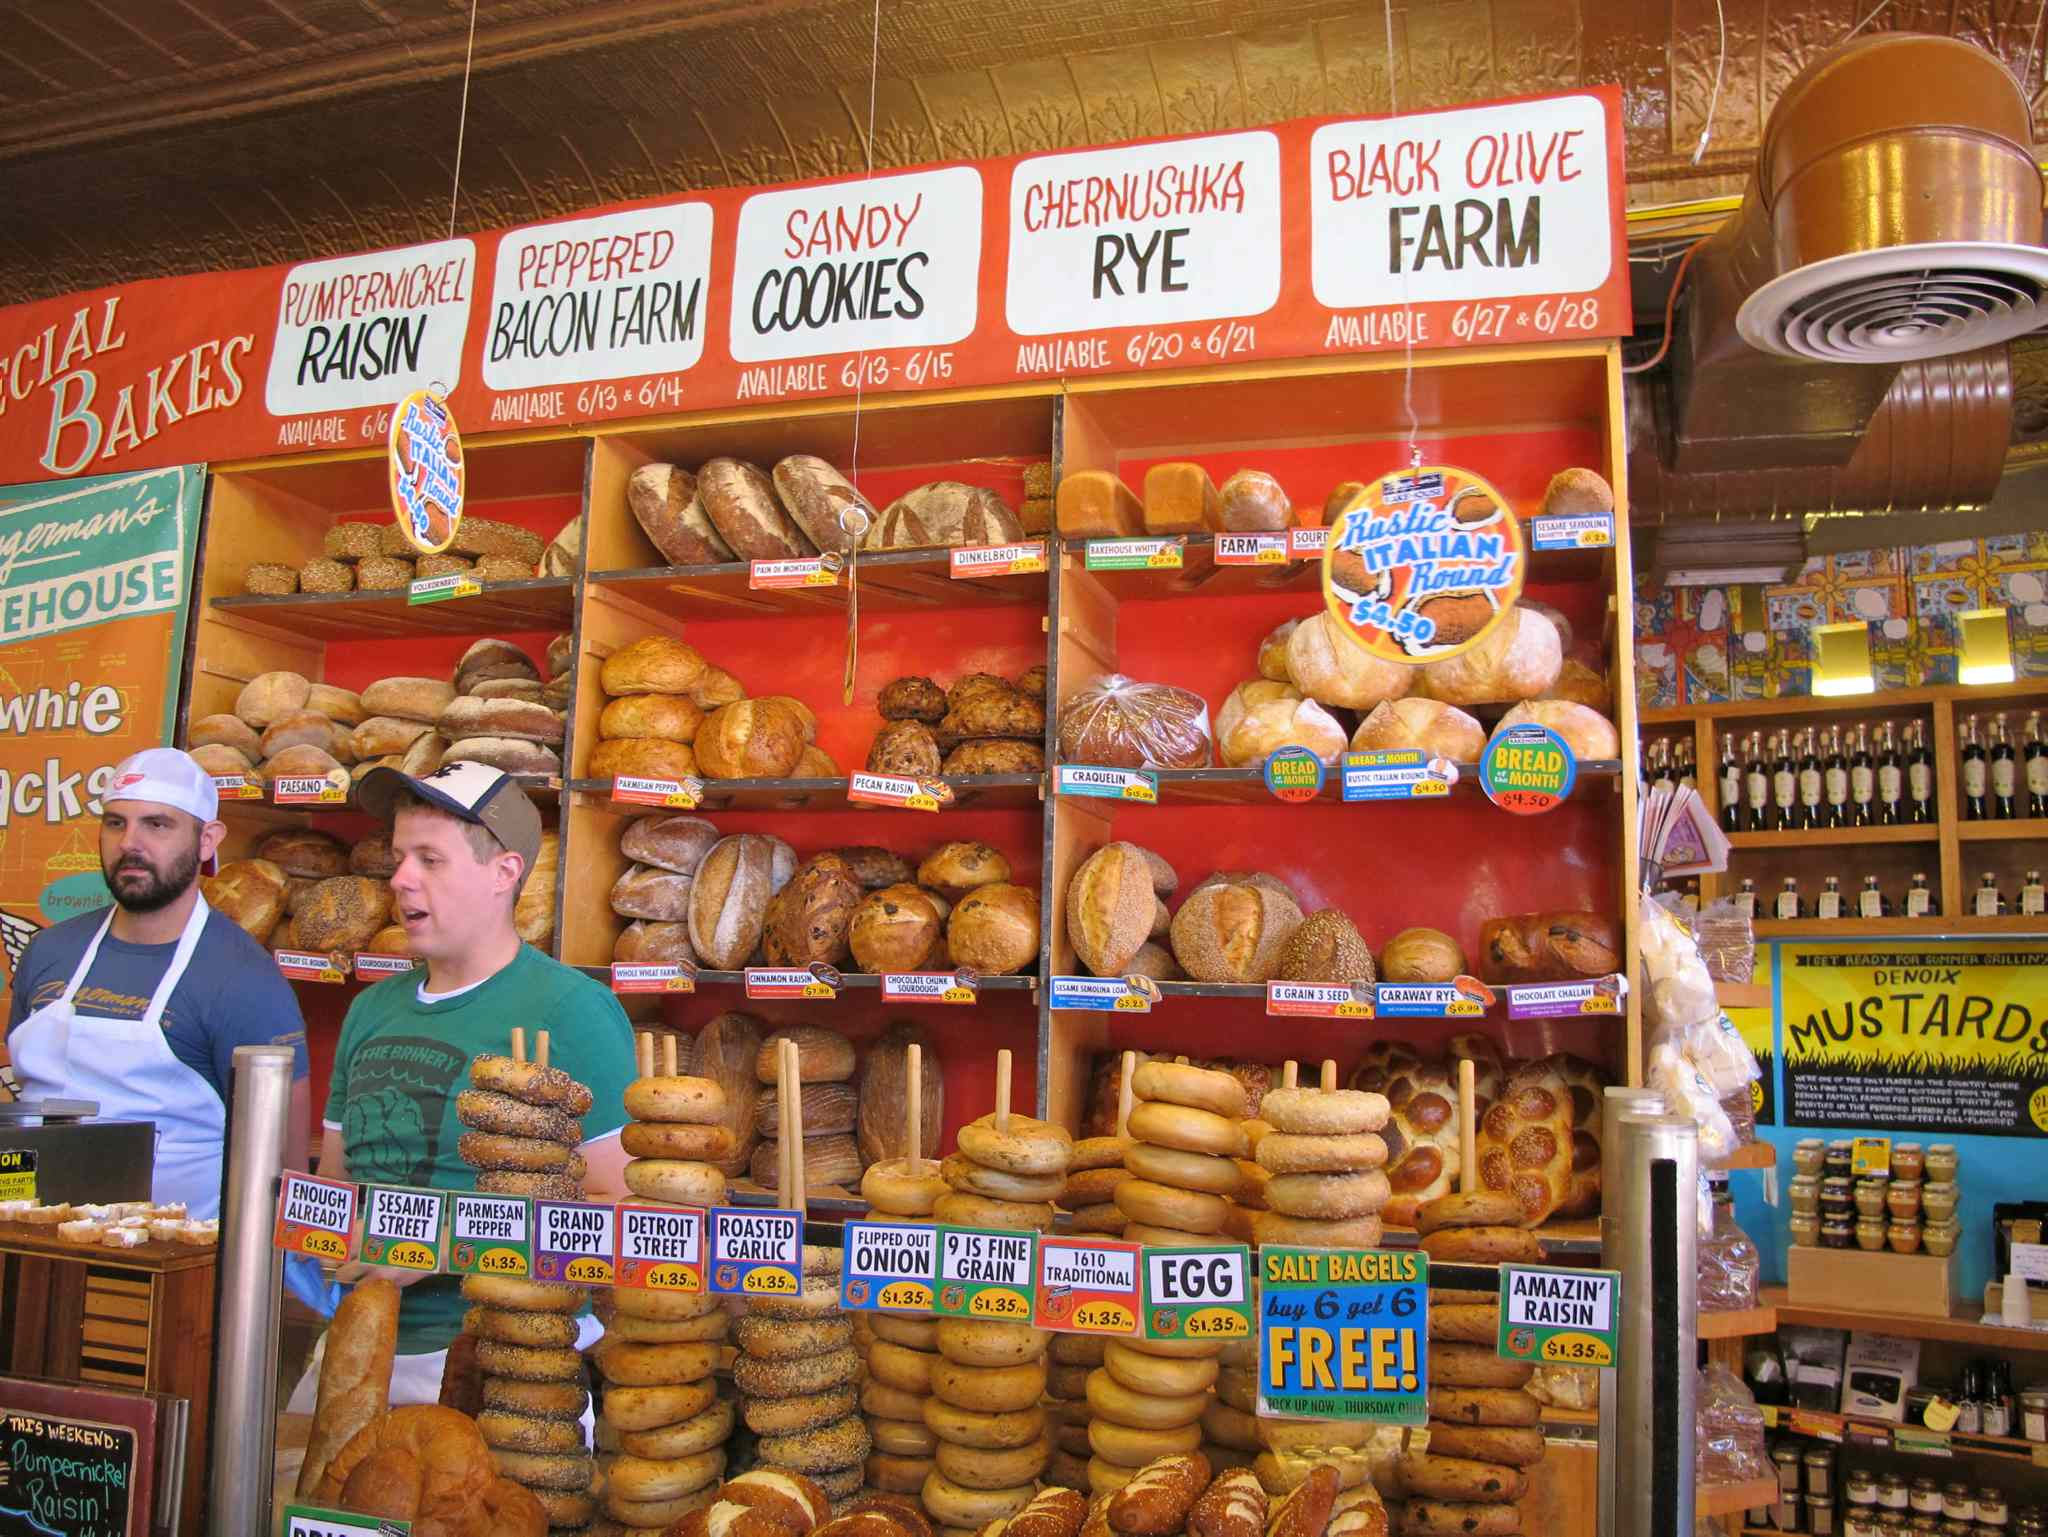 The bakery section of Zingerman's.